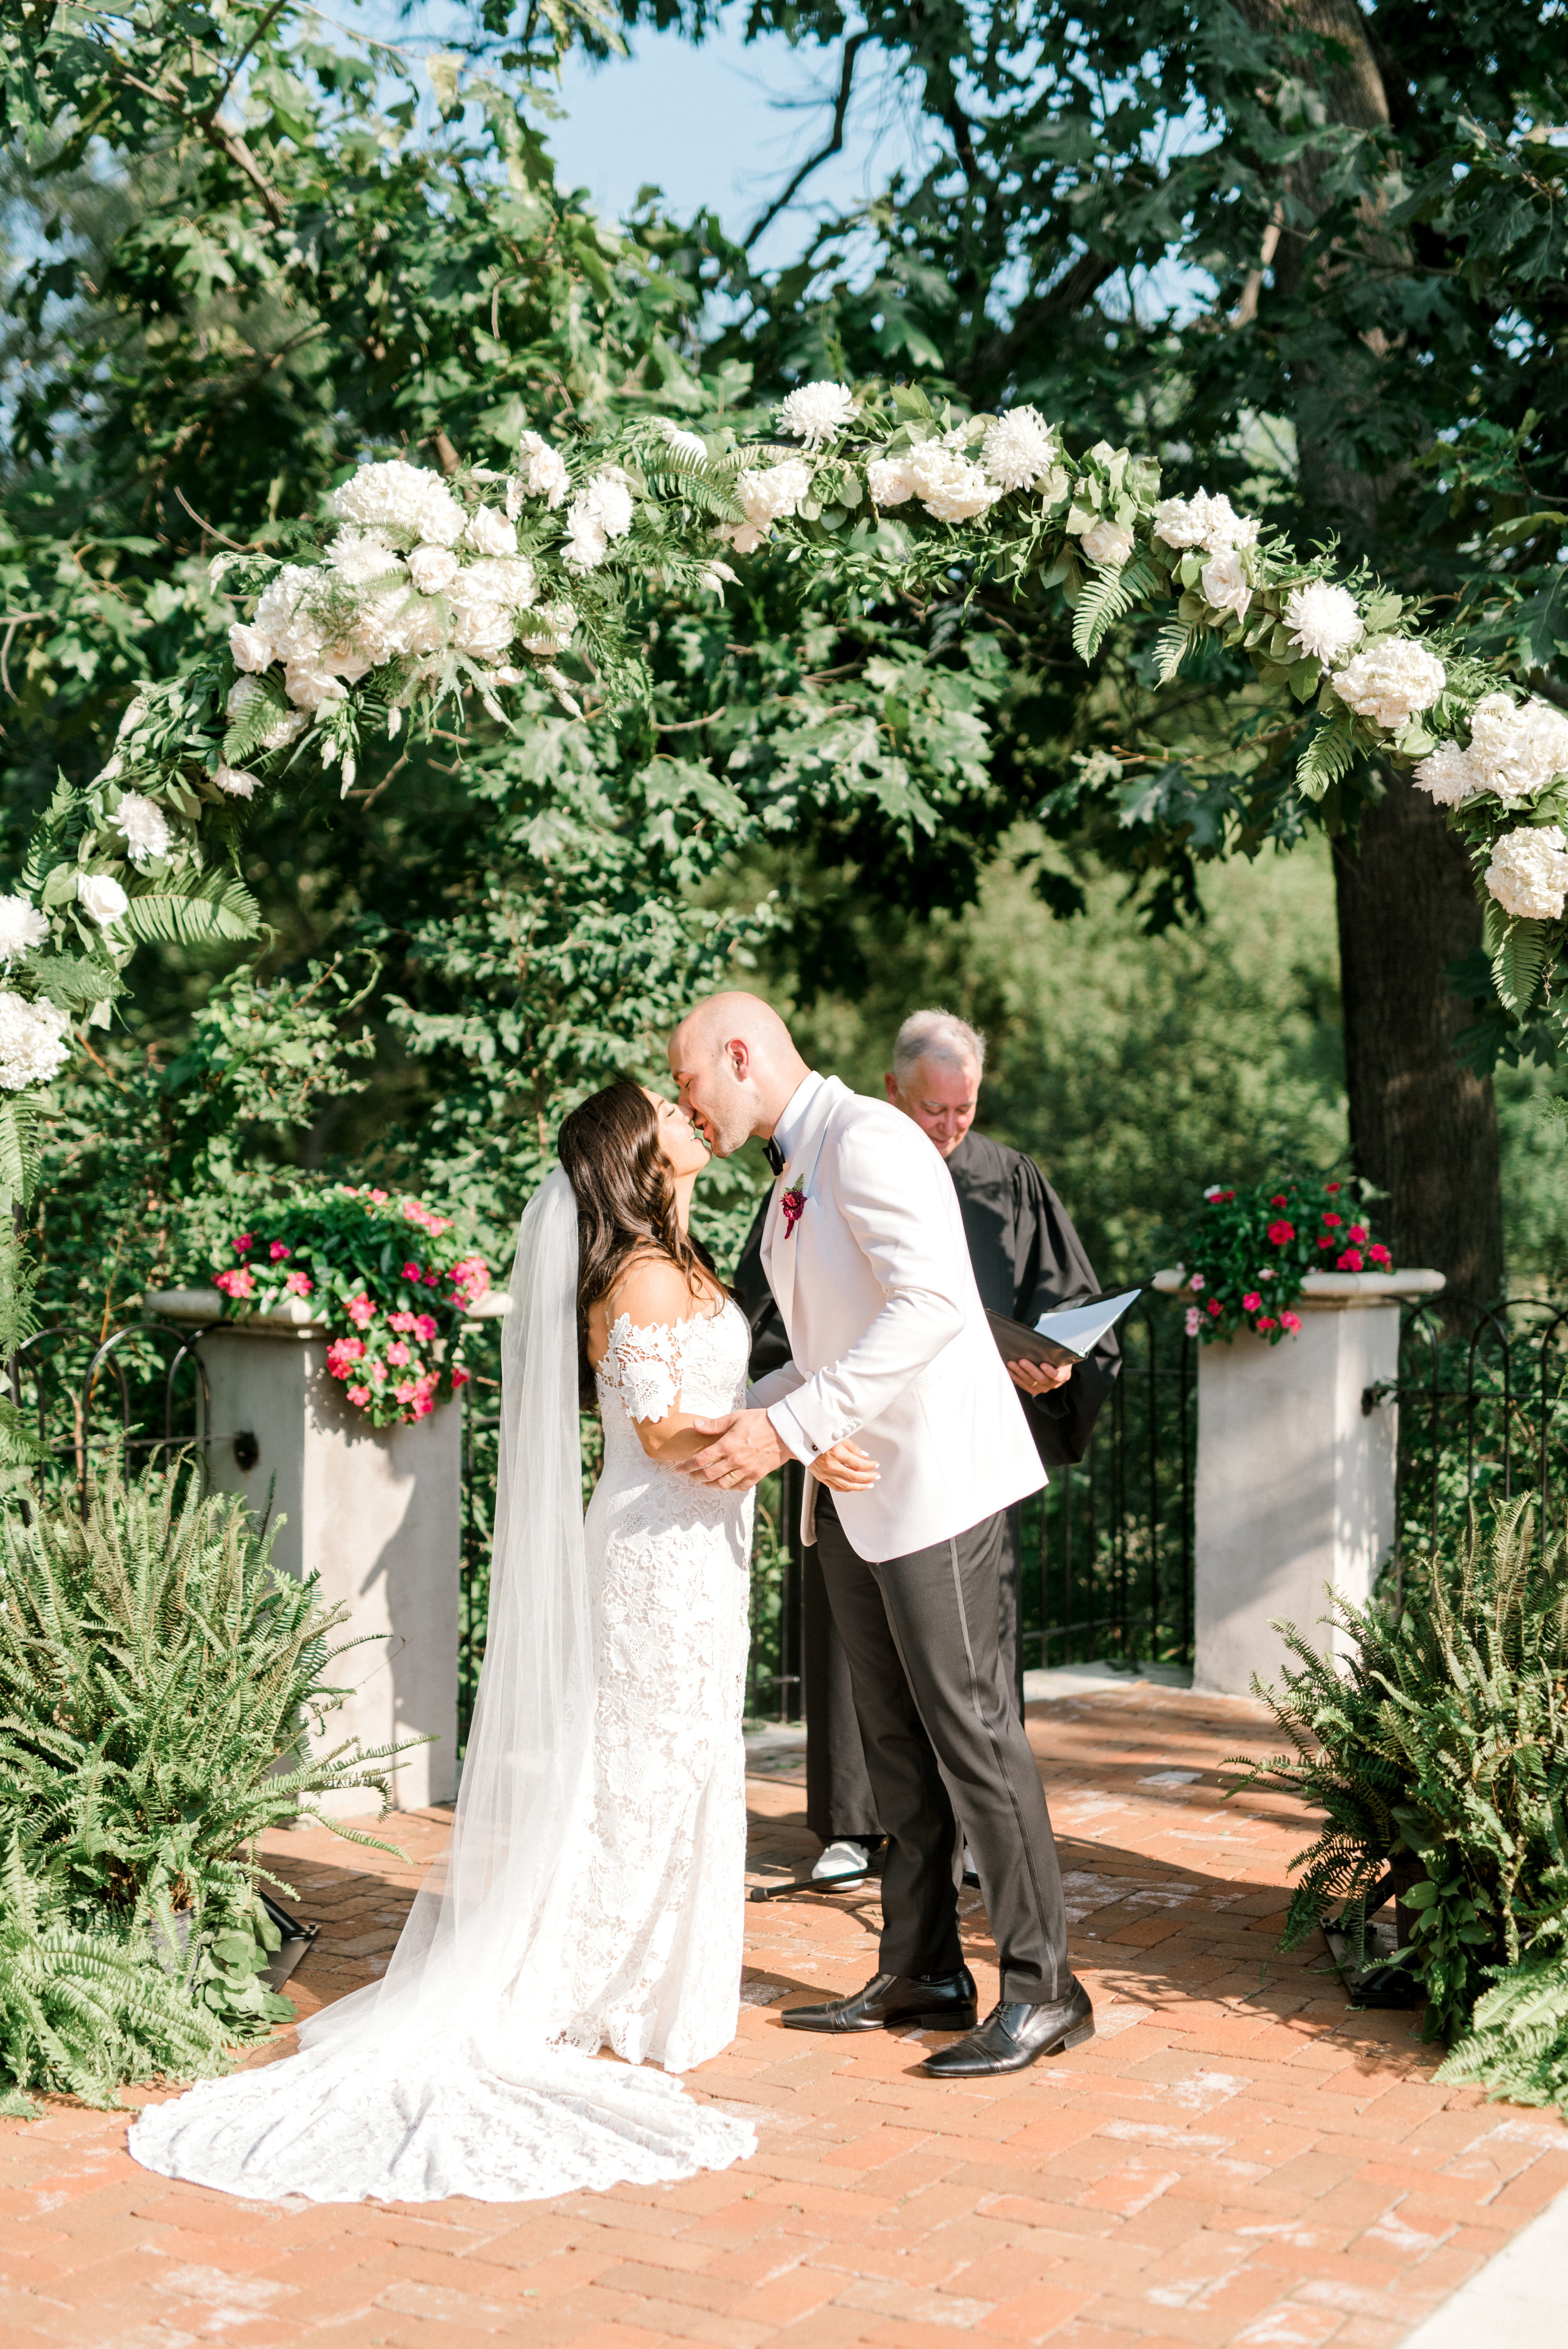 Lindsey and James share their first kiss under the white floral arch for their modern and bright summer wedding day at Hotel du Village.